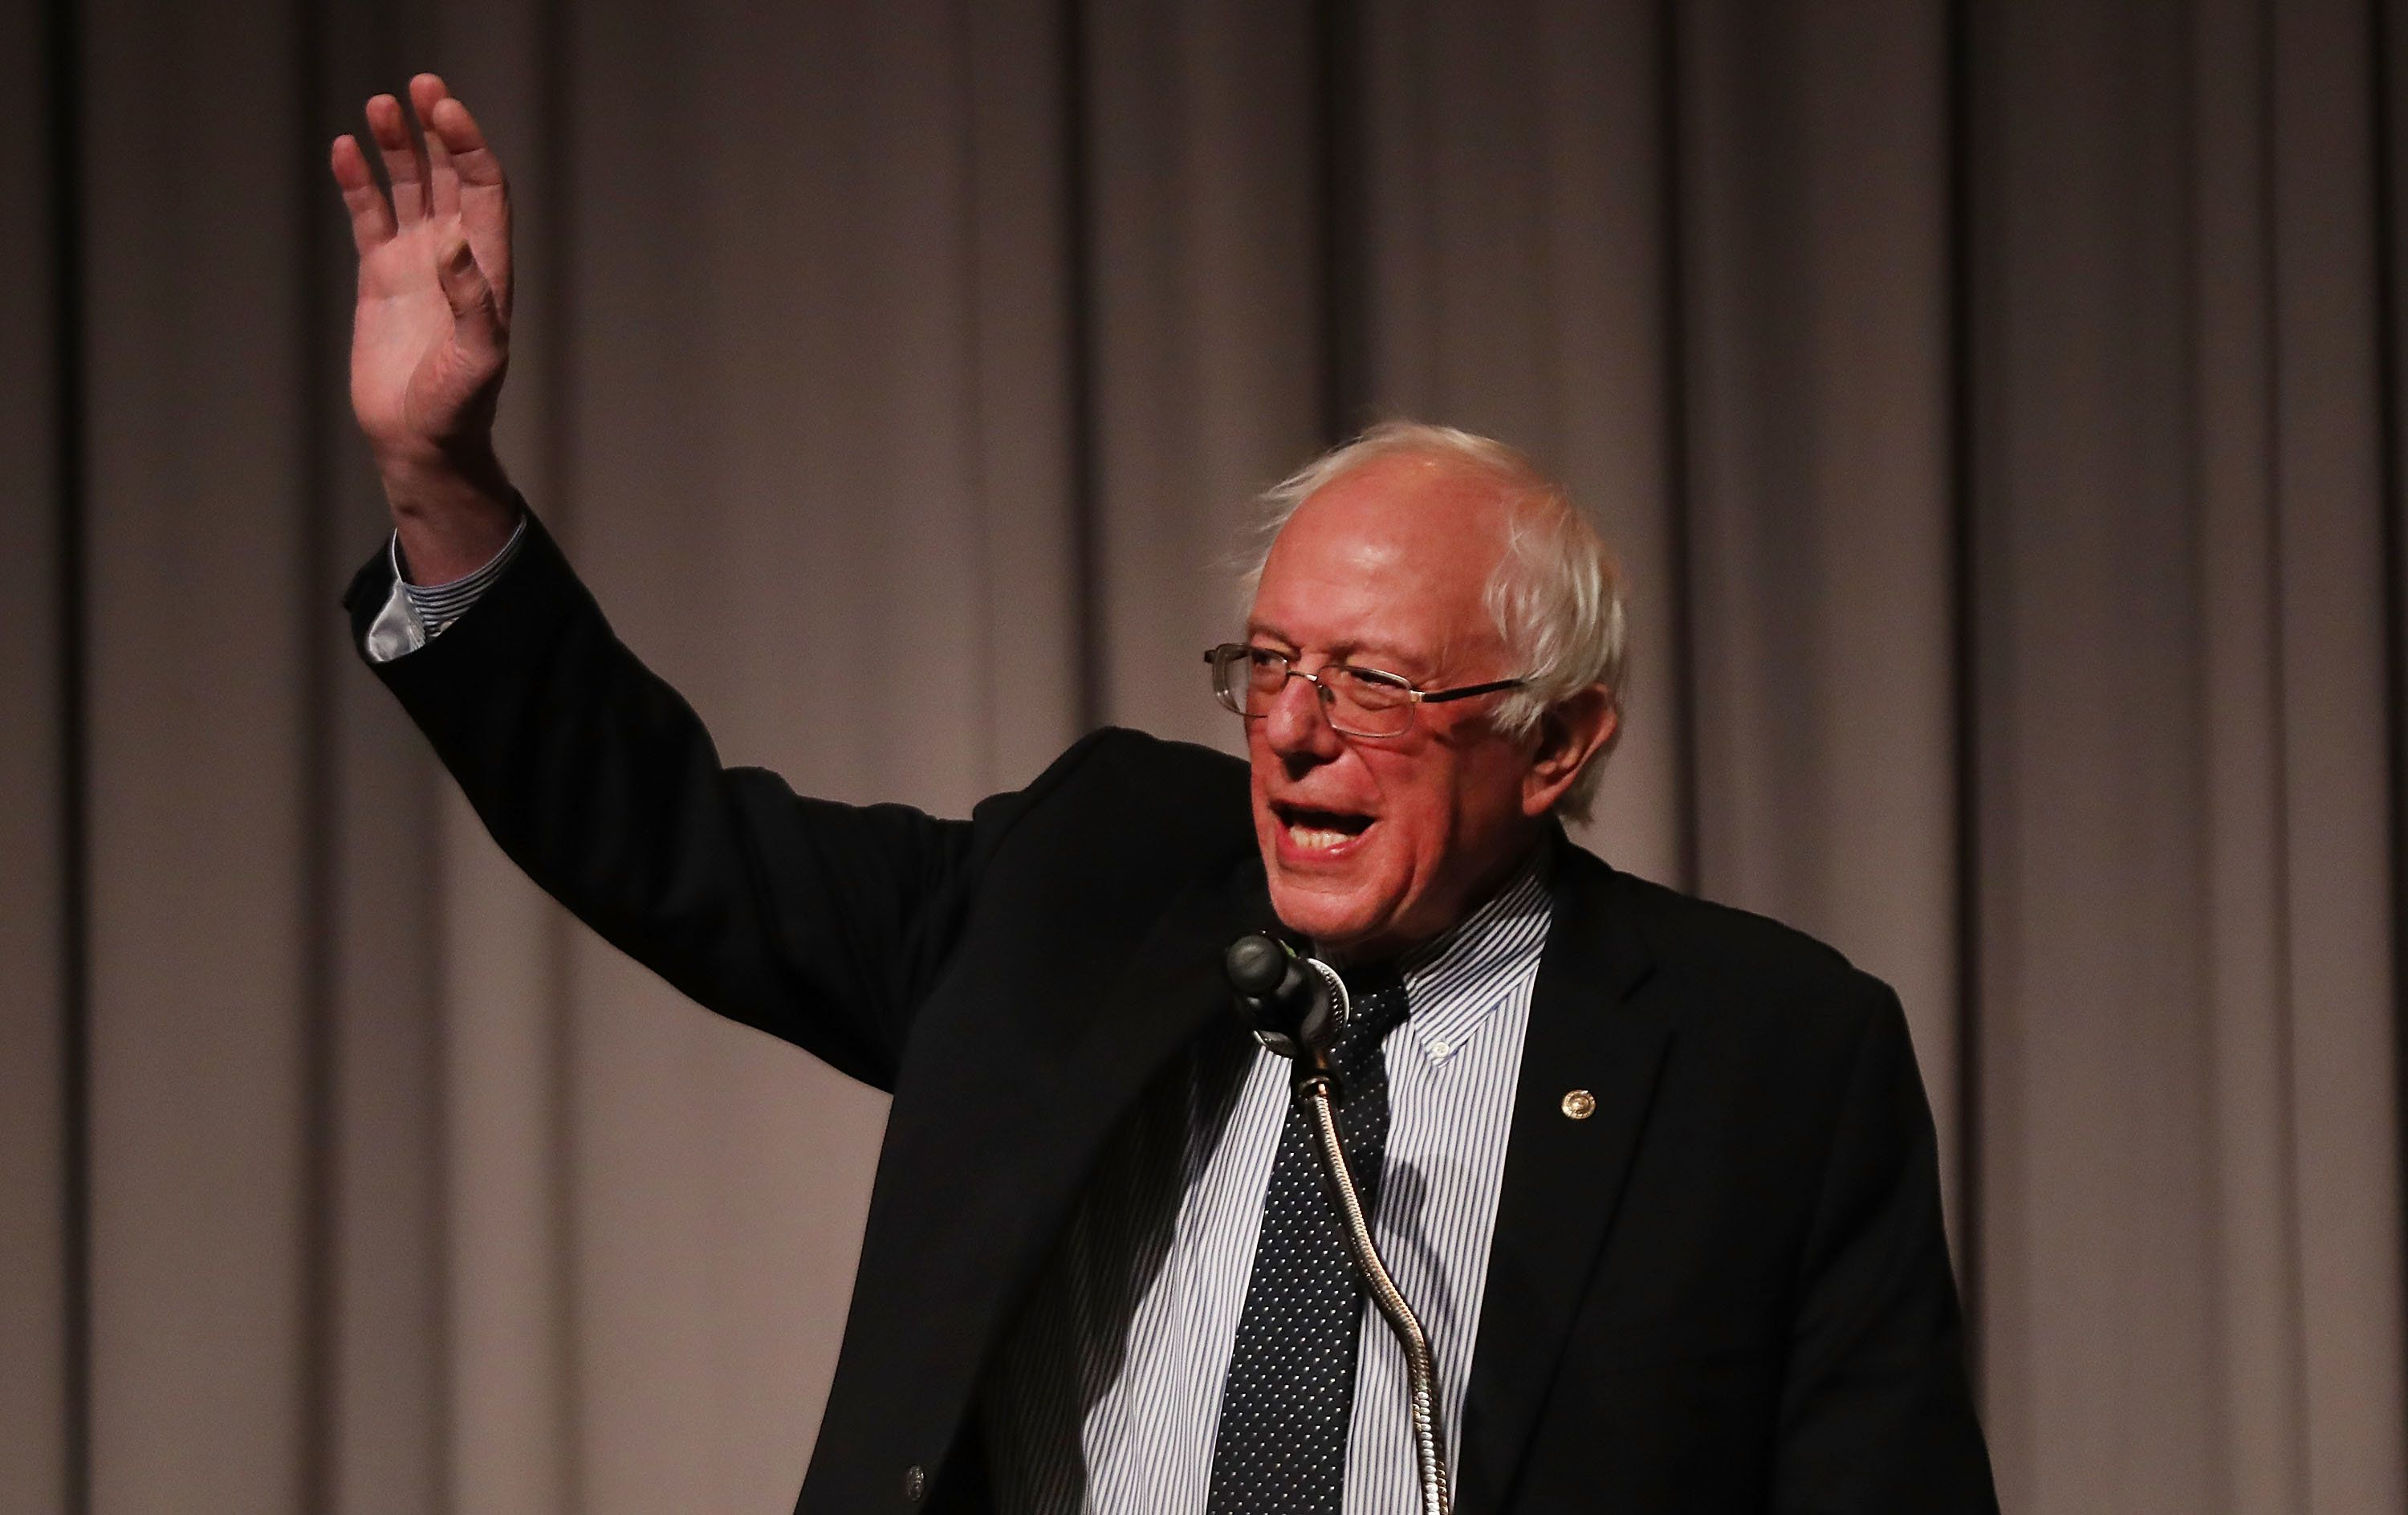 Sen. Bernie Sanders (I-Vt.), a former Democratic presidential candidate, has vowed to hold President-elect Donald Trump